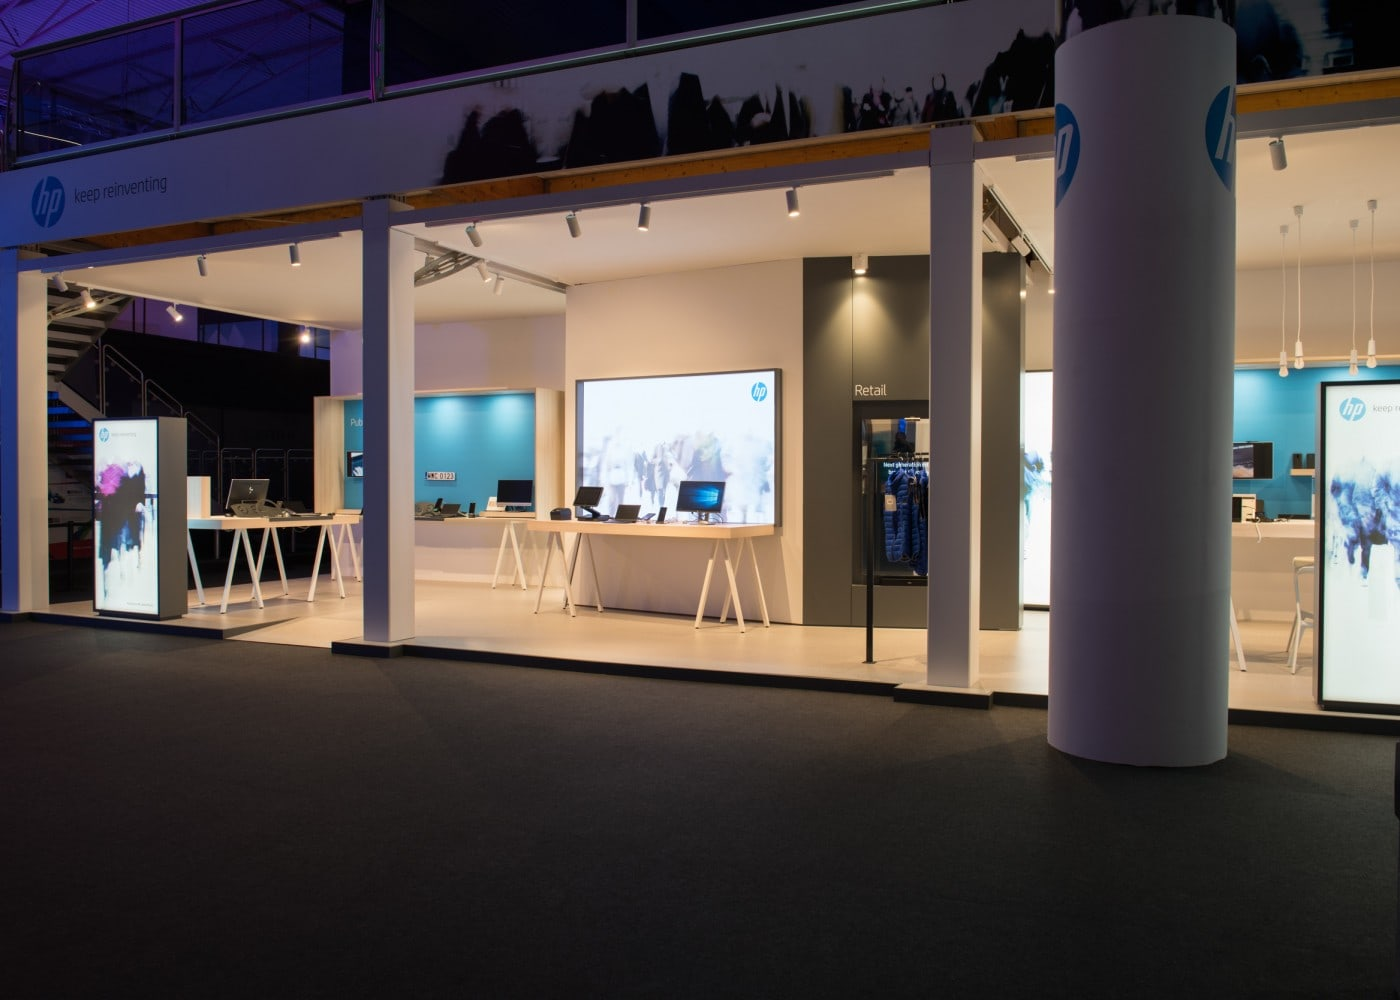 retail lighting design: Barcelona HP stand exterior